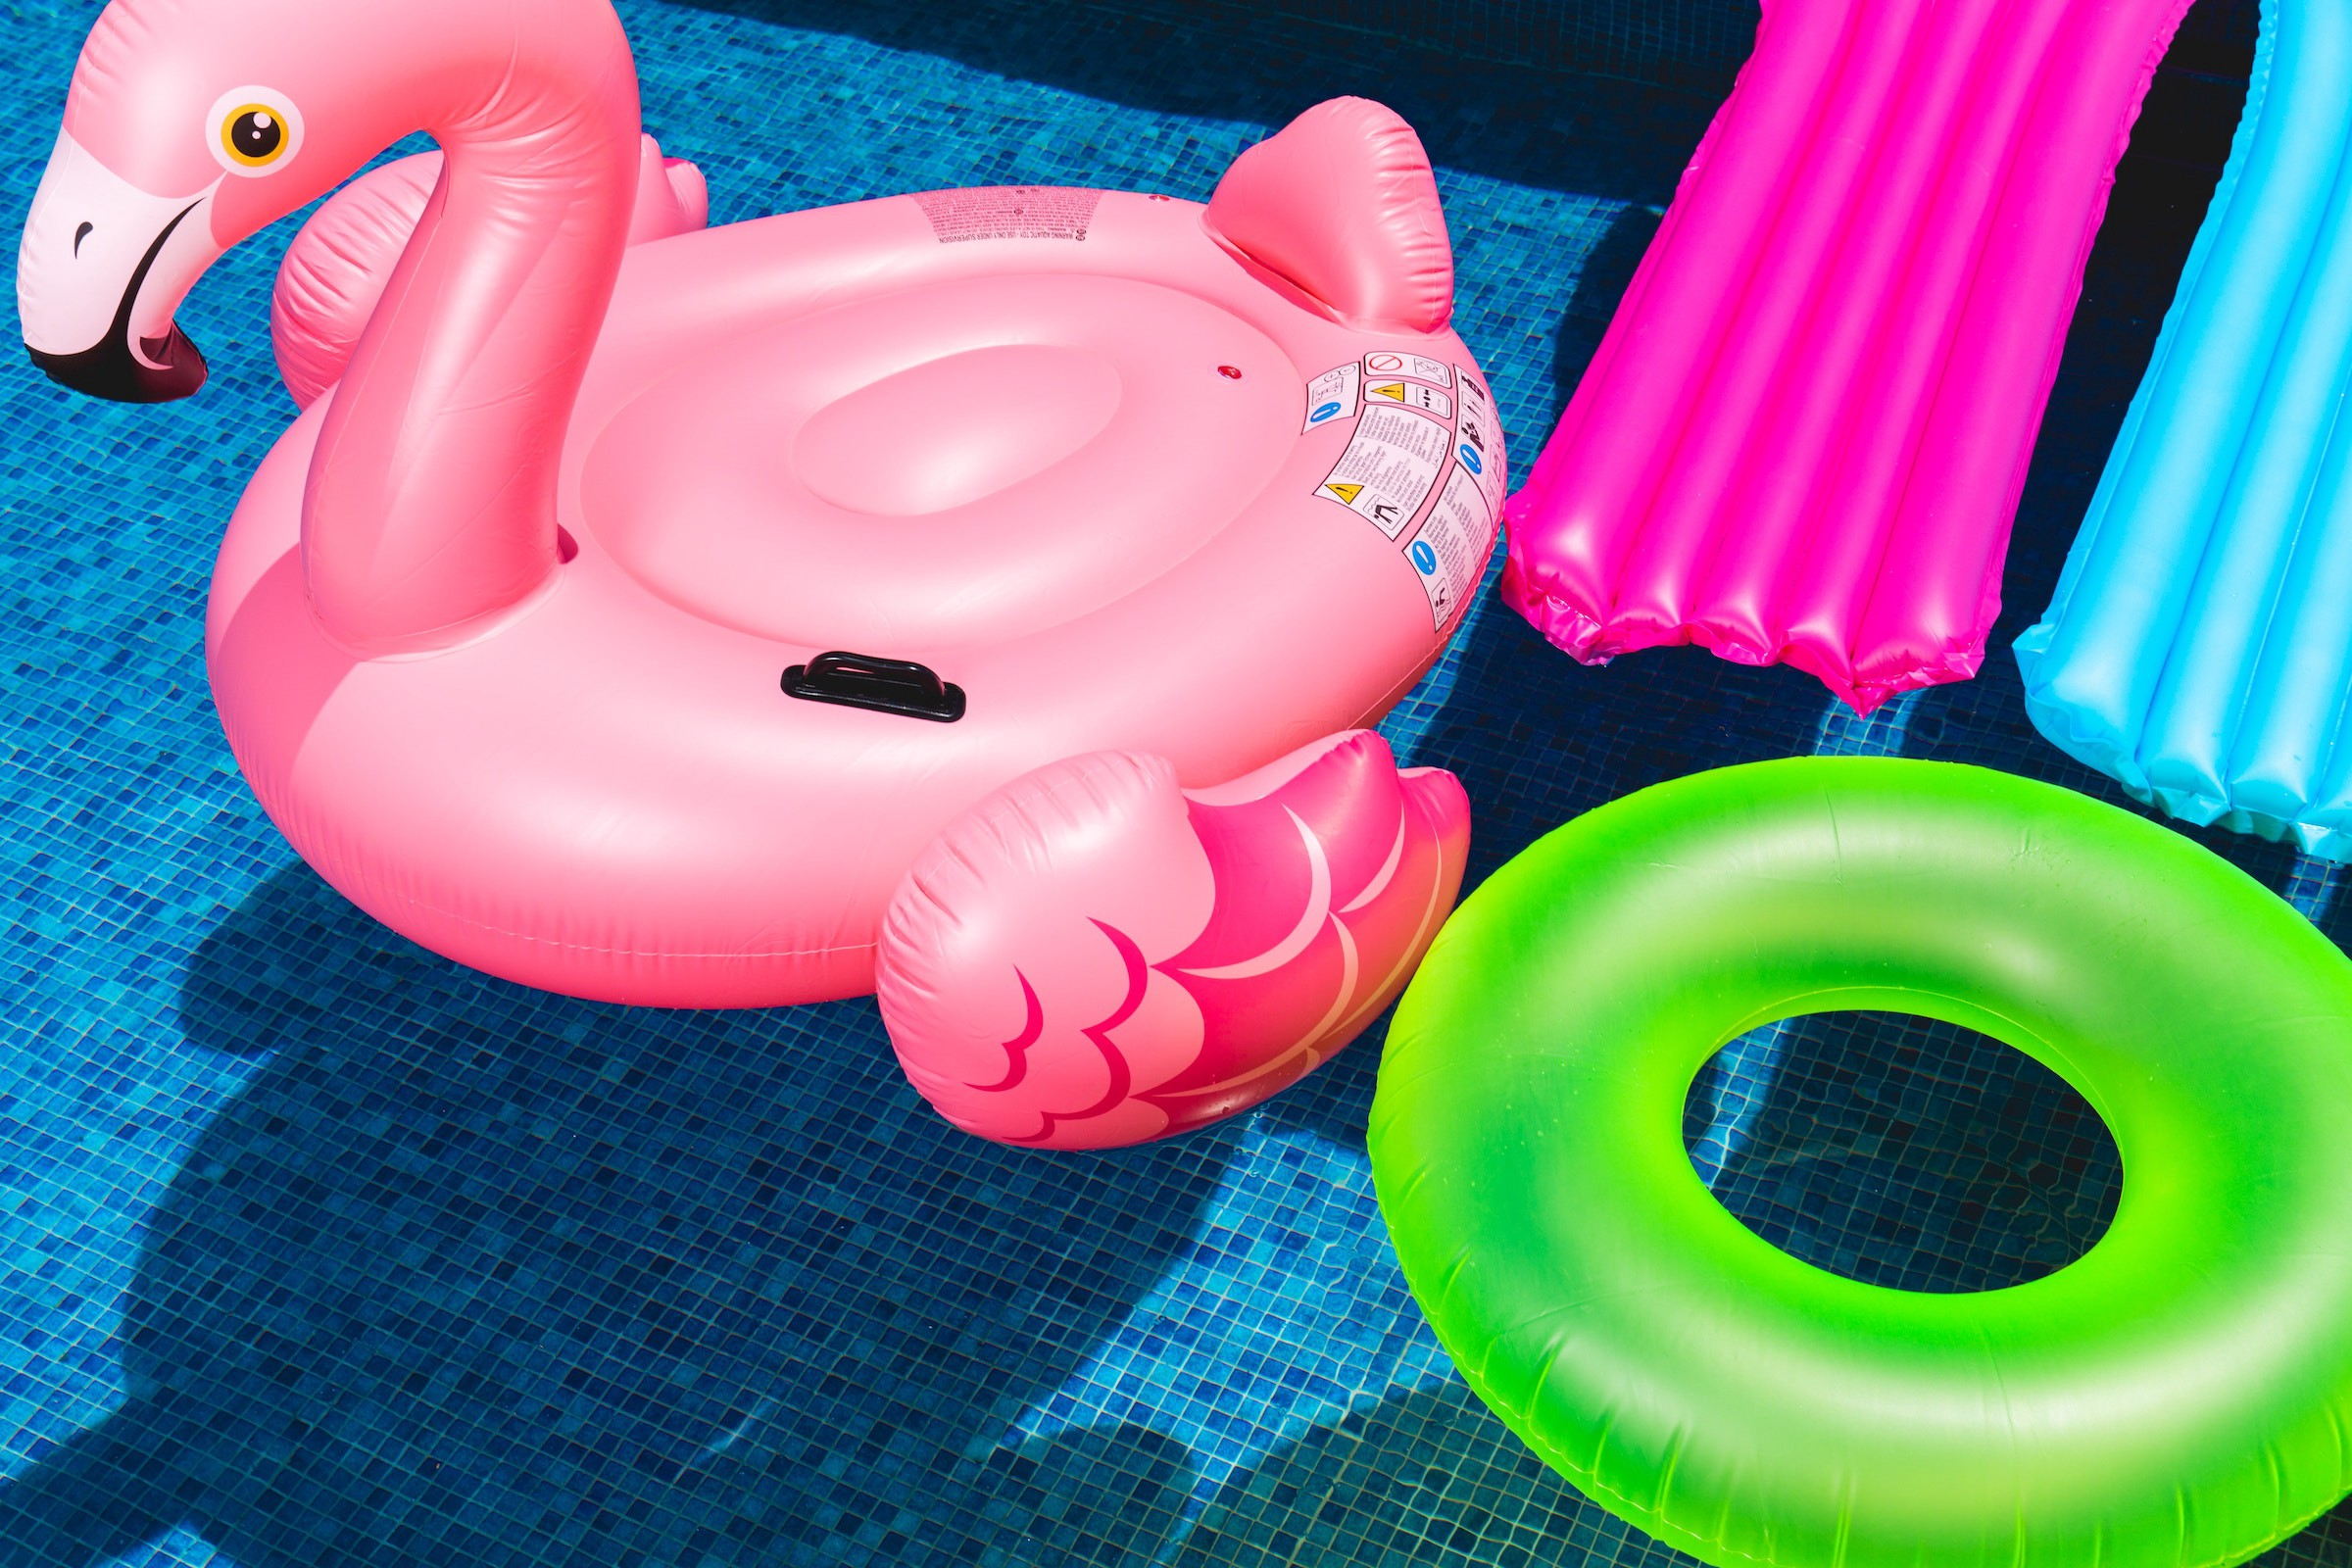 An inflatable flamingo, inner tube, and two pool floats in a pool